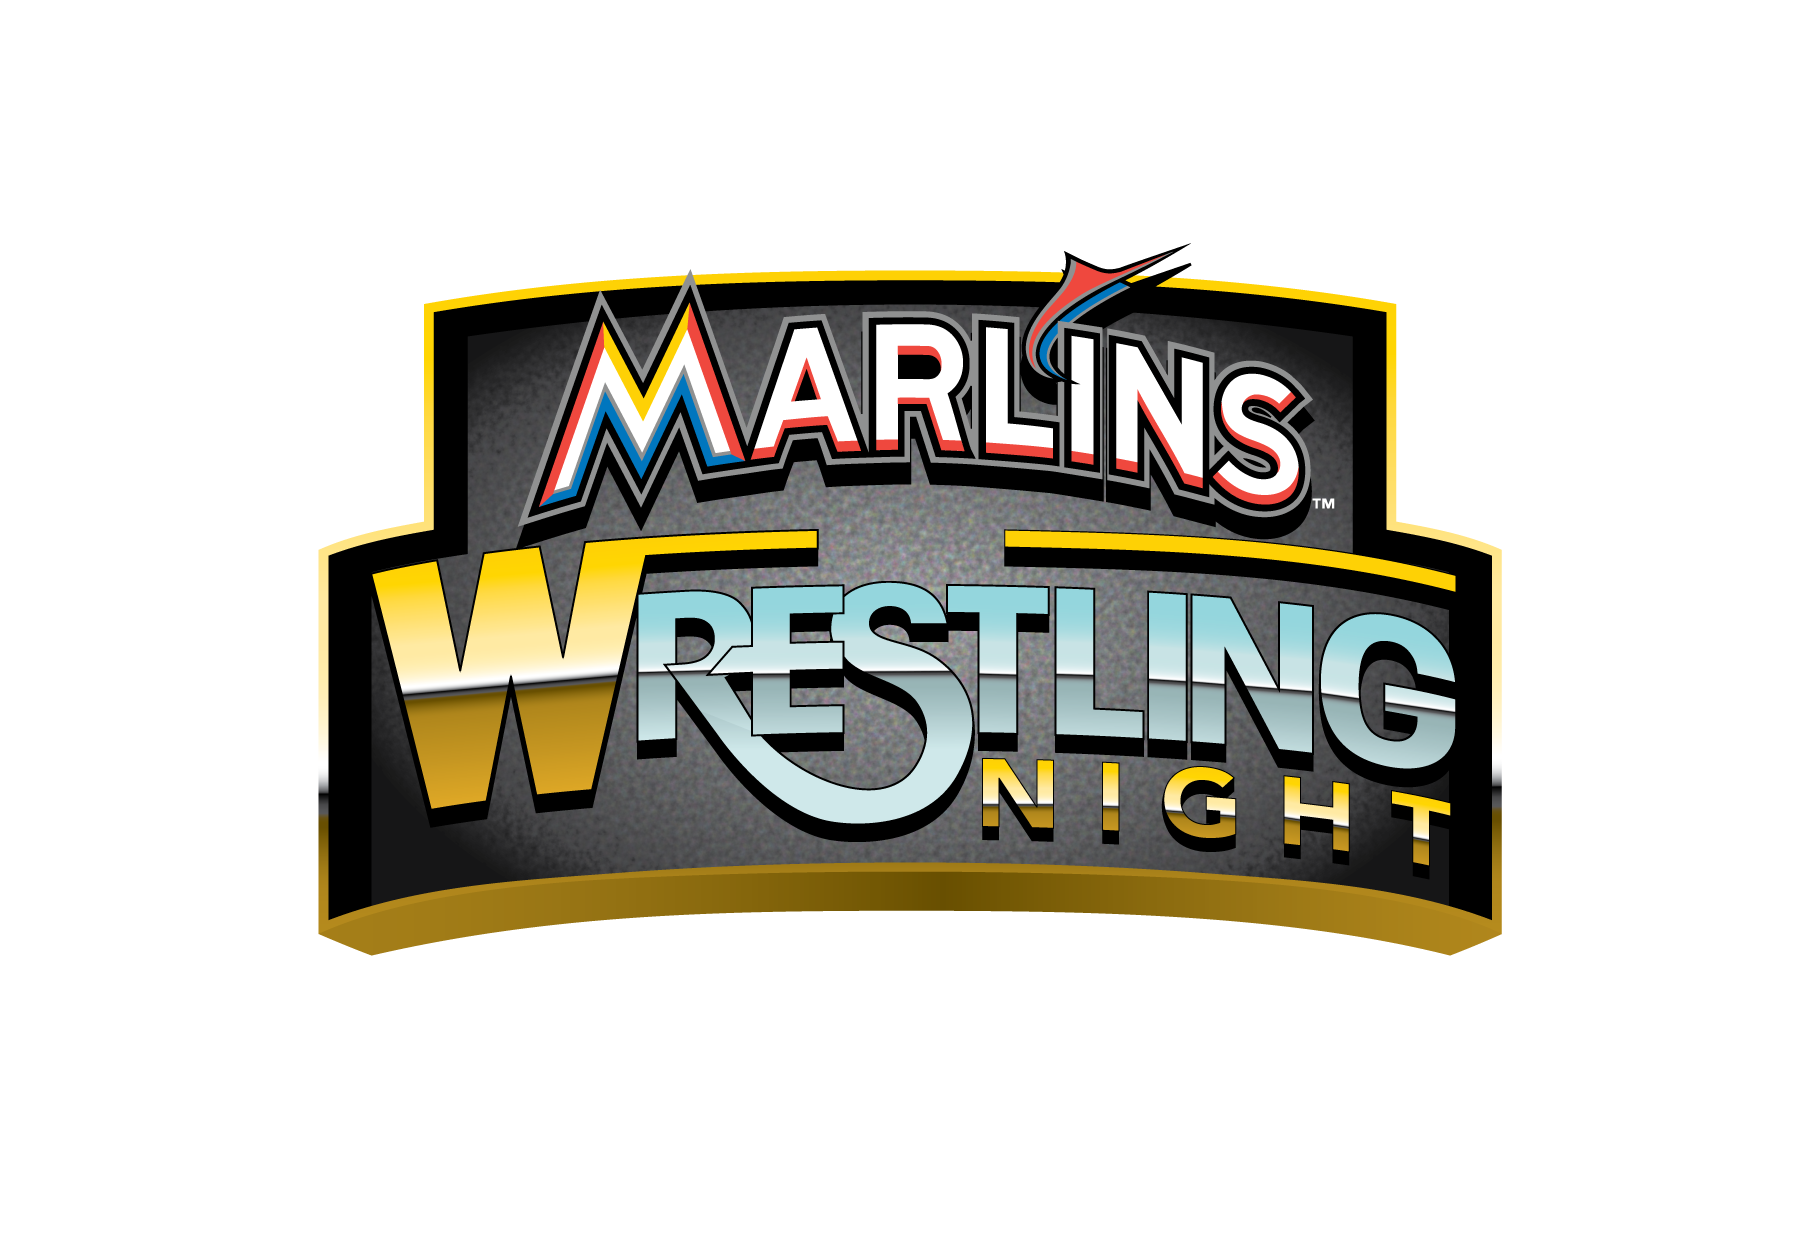 Marlins baseball clipart banner transparent library Miami Marlins Host Wrestling Night with Mick Foley and Kevin Nash ... banner transparent library